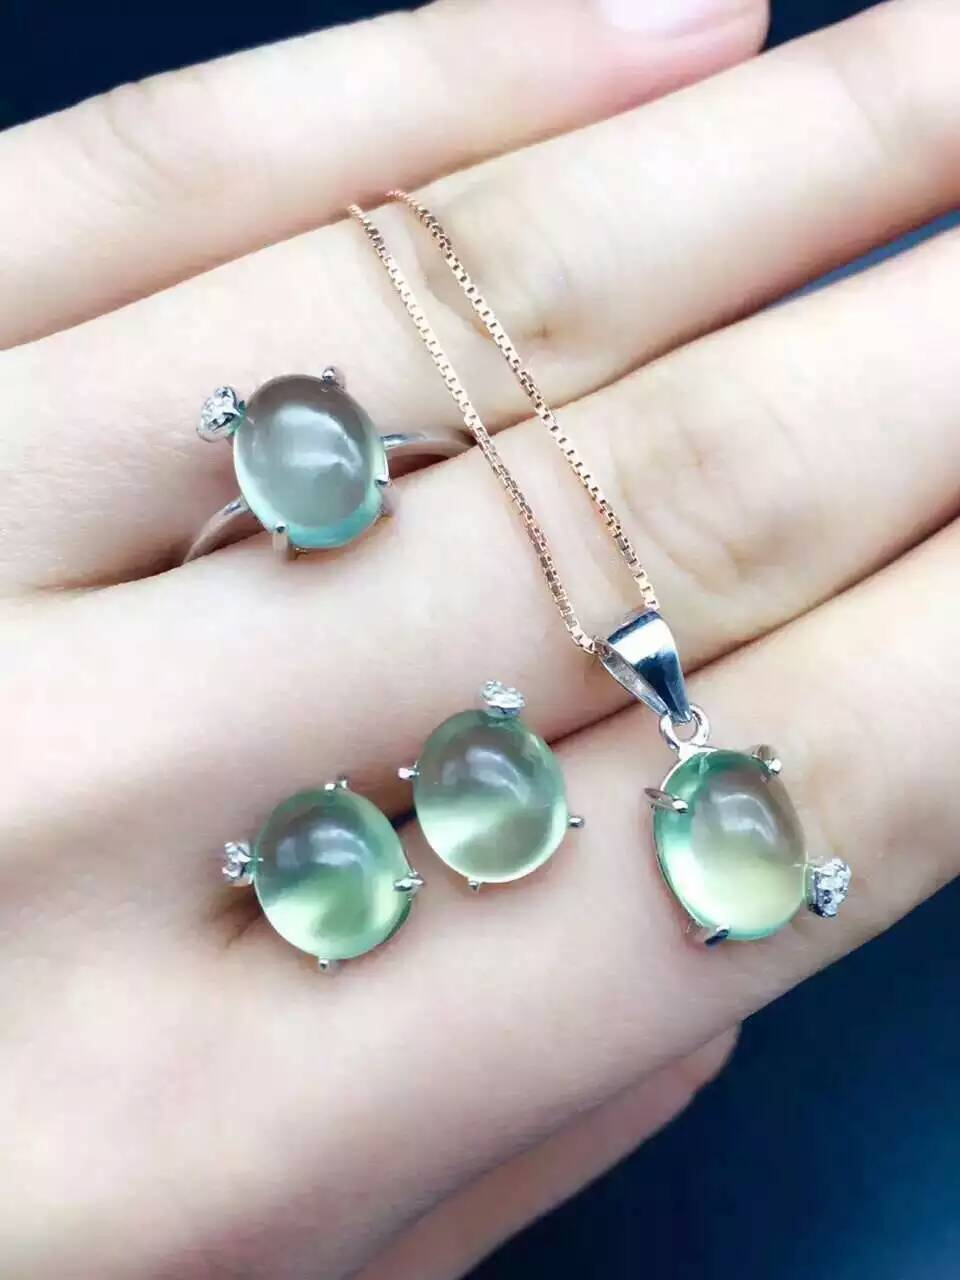 Natural green prehnite gem jewelry sets natural gemstone Pendant ring Earrings 925 silver Stylish elegant round women jewelry natural green jasper gem jewelry sets natural gemstone ring earrings pendant 925 silver stylish elegant round women fine jewelry